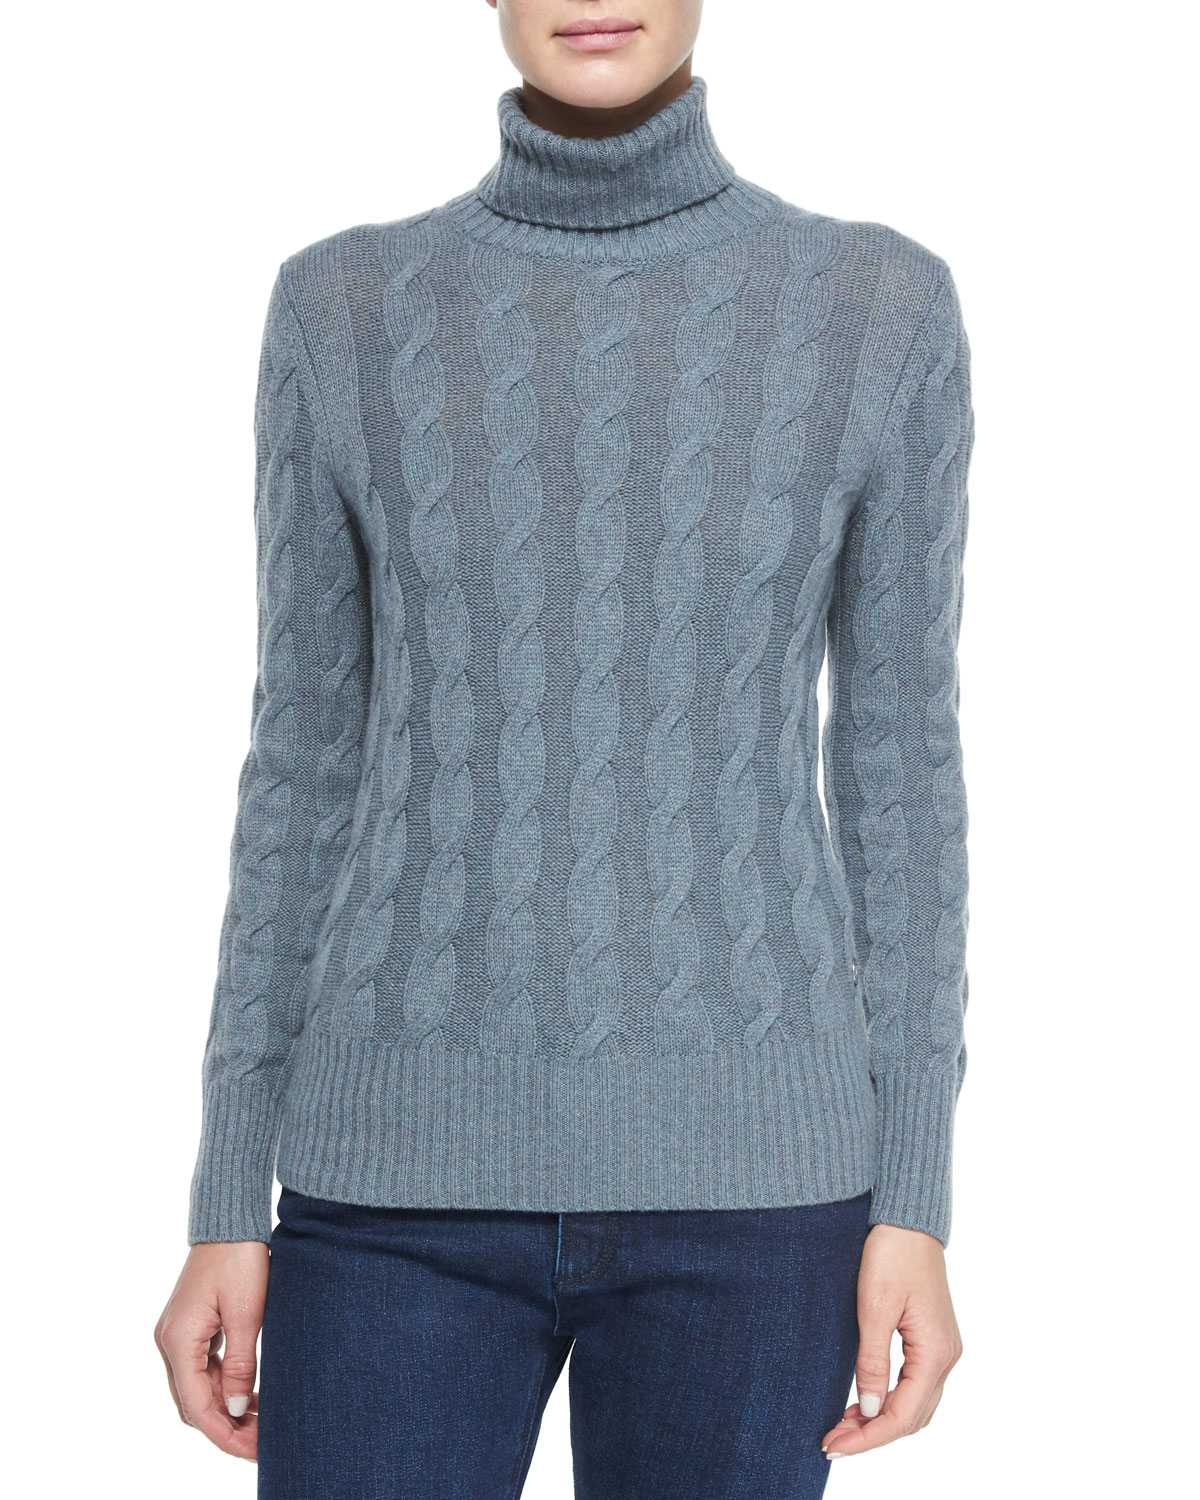 Loro piana Cashmere Cable Knit Turtleneck Sweater in Blue | Lyst